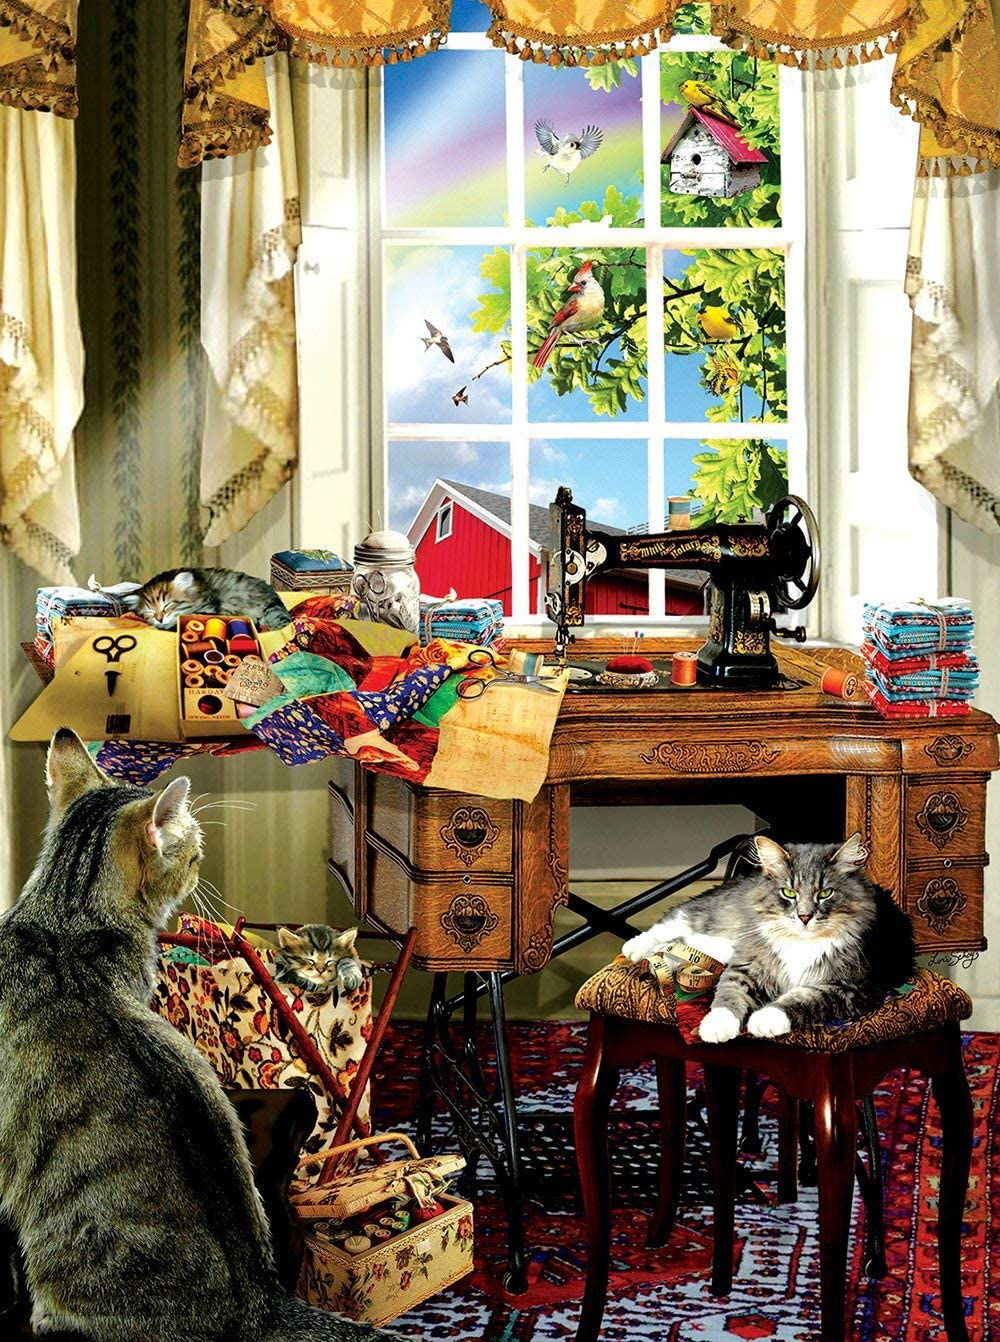 The Sewing Room 1000 Pc Jigsaw Puzzle by SunsOut